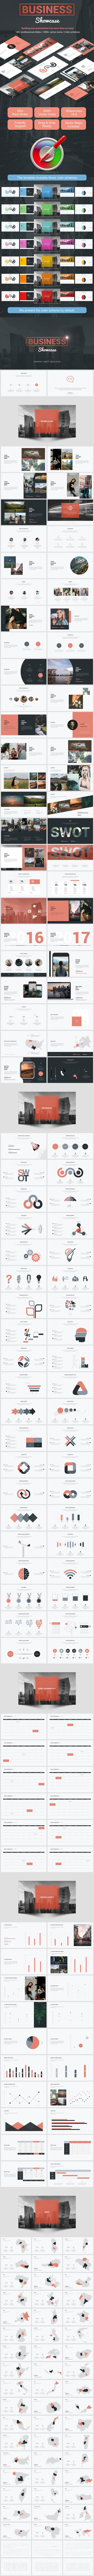 Business Showcase - Business PowerPoint Templates